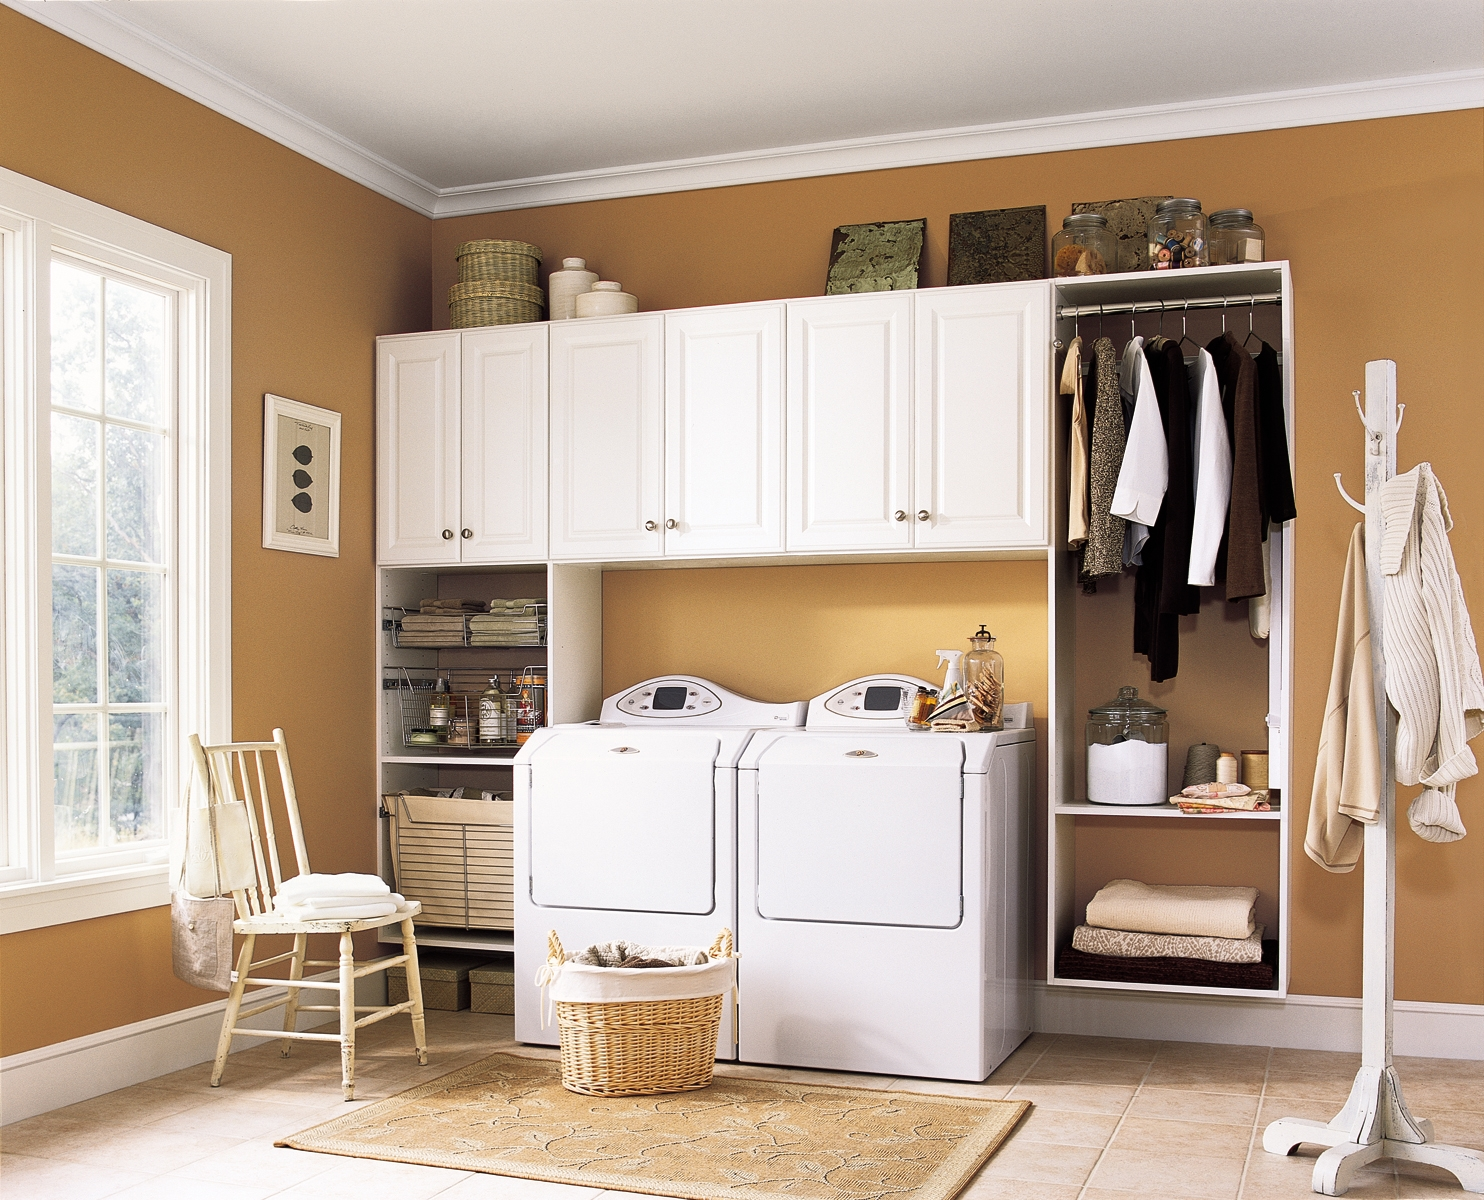 Laundry room storage organization and inspiration for Laundry room cabinets ideas